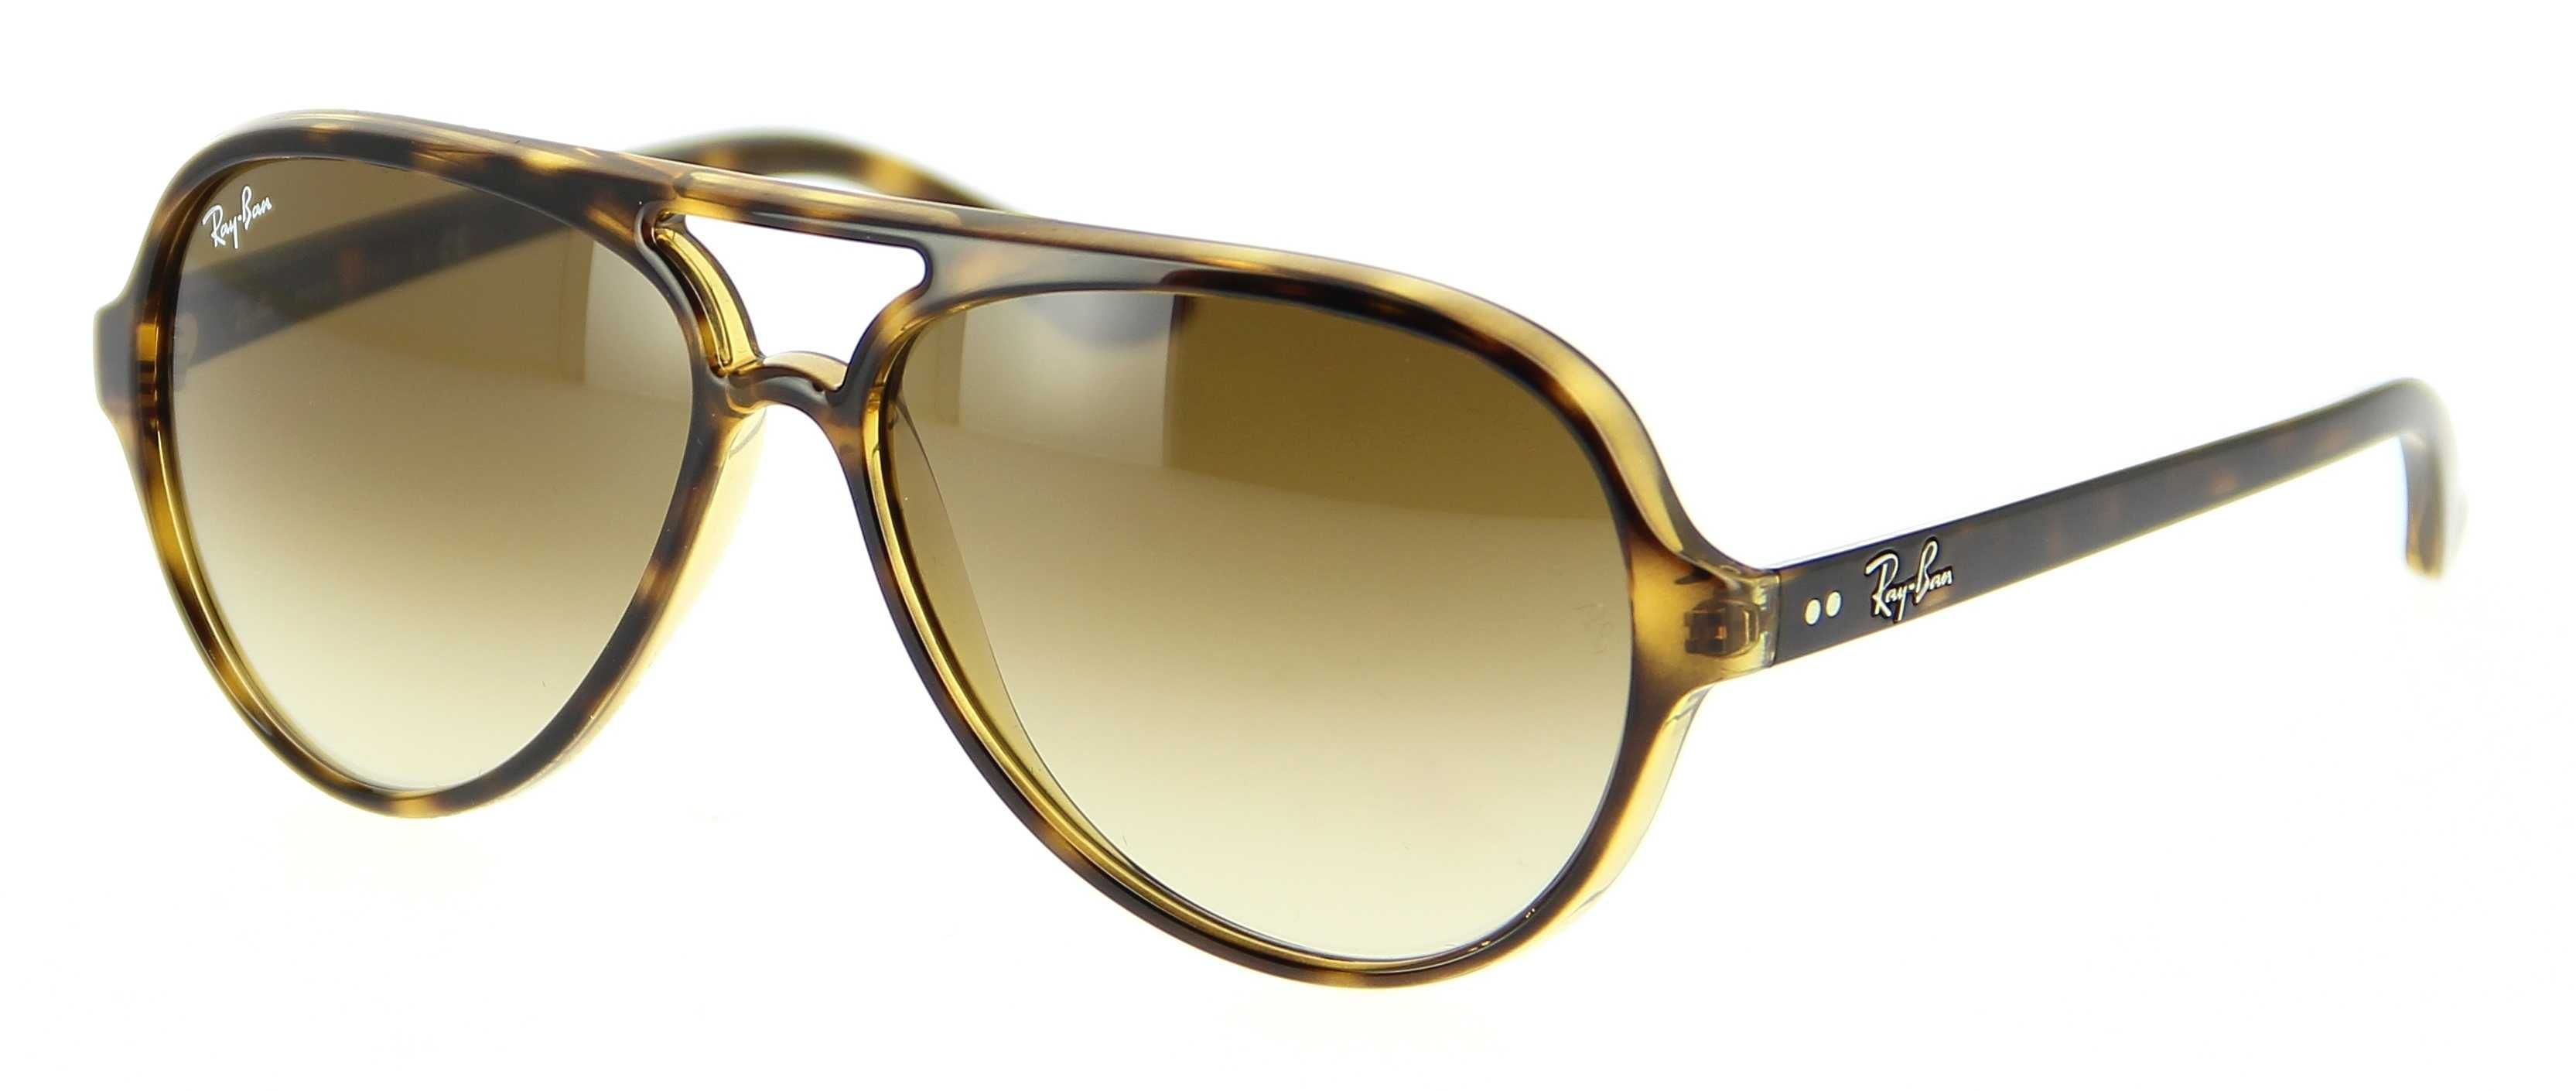 Ray-ban rb 4125 710 51 cats 5000 59 13   lunettes tendances 2017 ... d194820ffba3